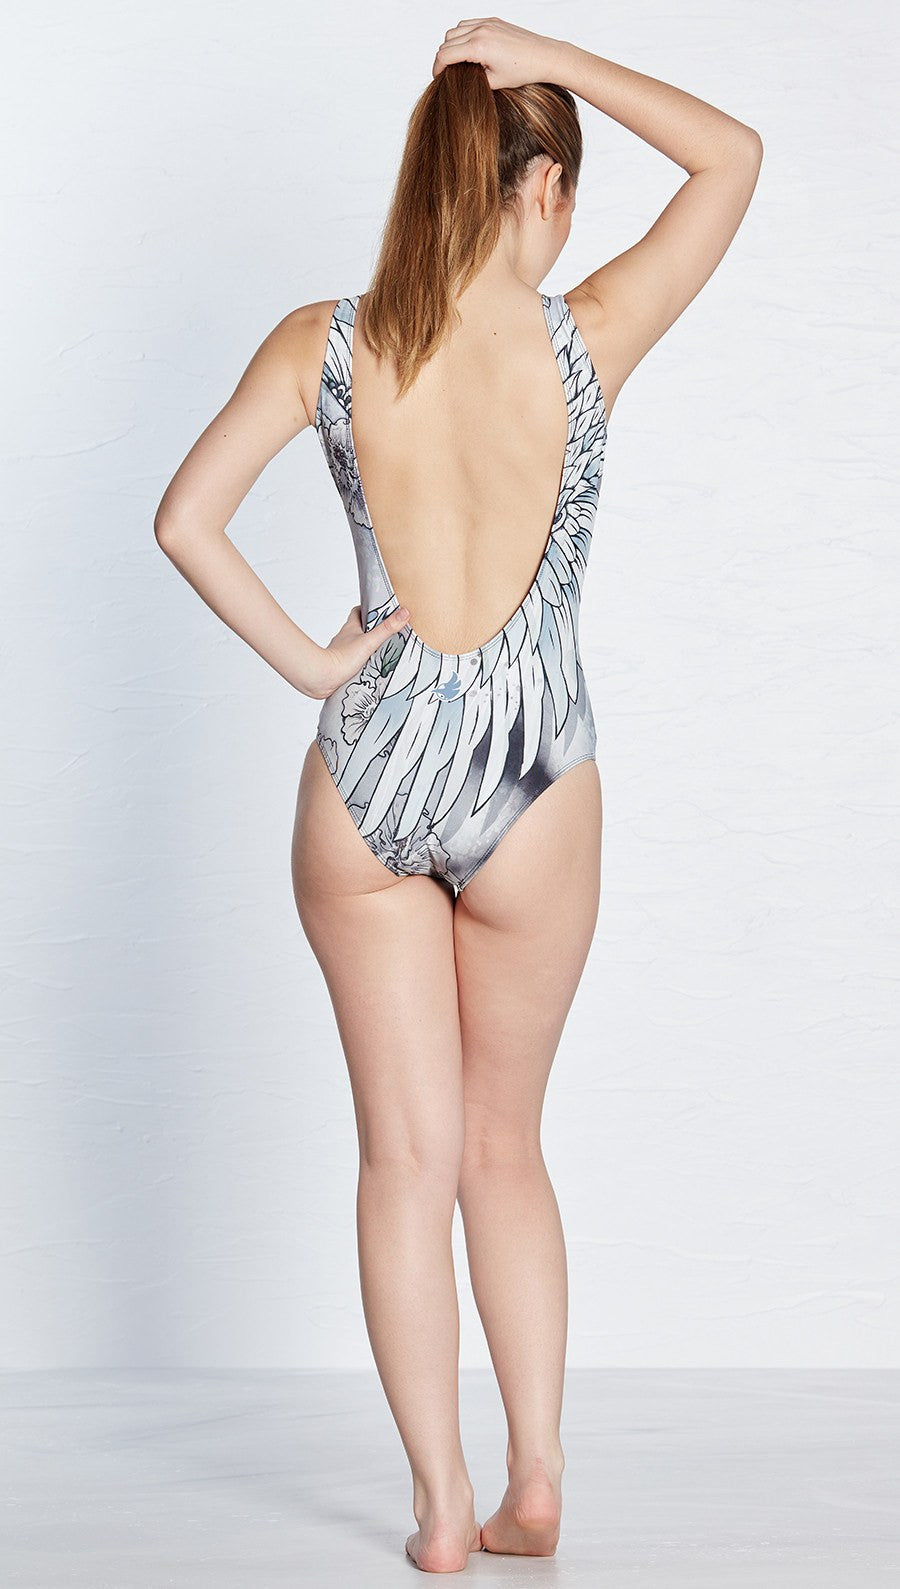 front view of swooping crane themed one piece swimsuit / leotard